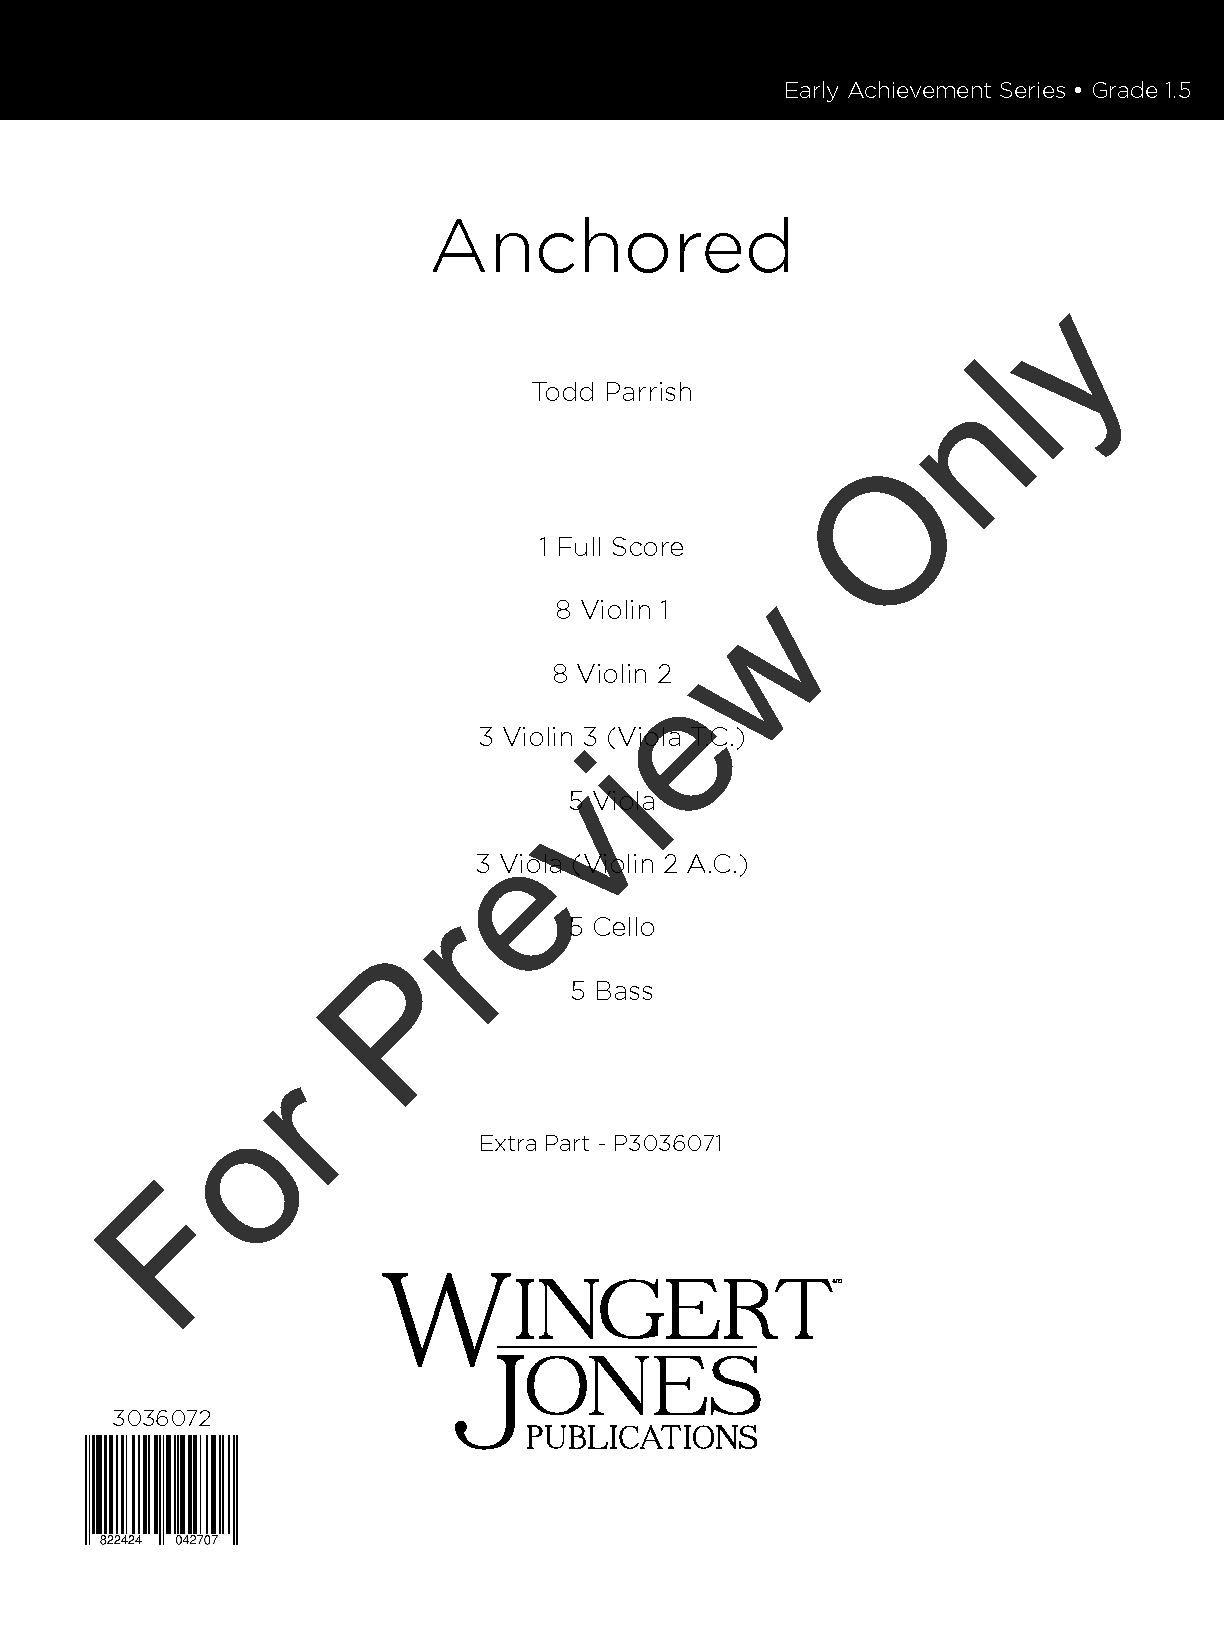 Anchored by Todd Parrish| J.W. Pepper Sheet Music